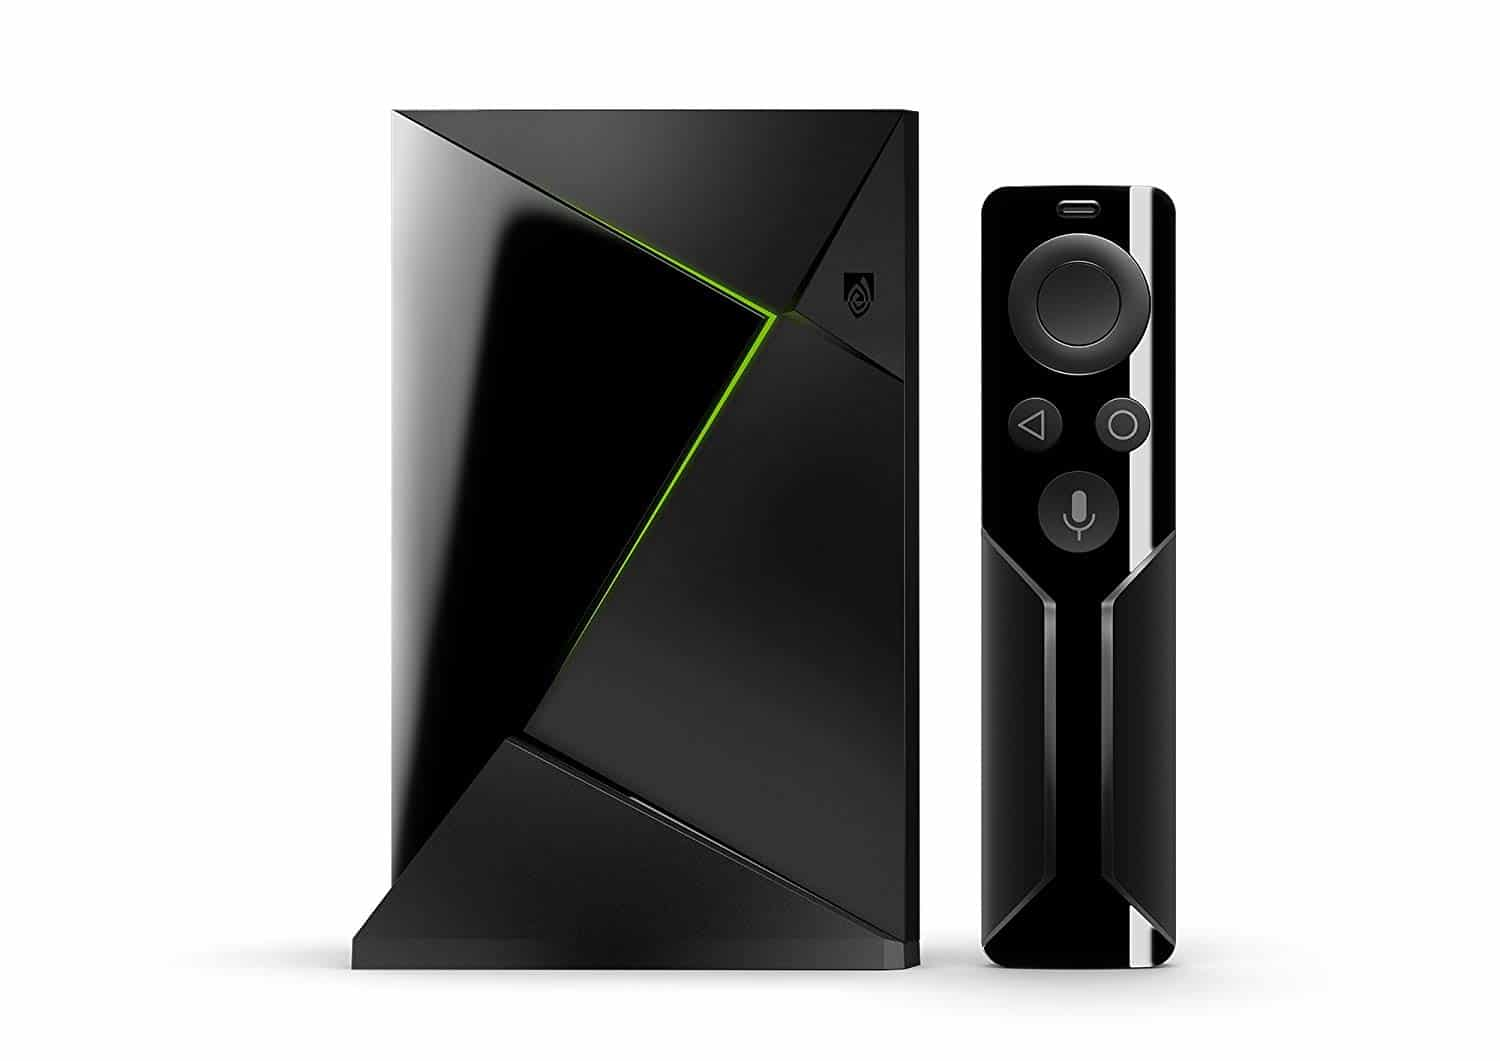 nvidia shield tv pro meilleure box android